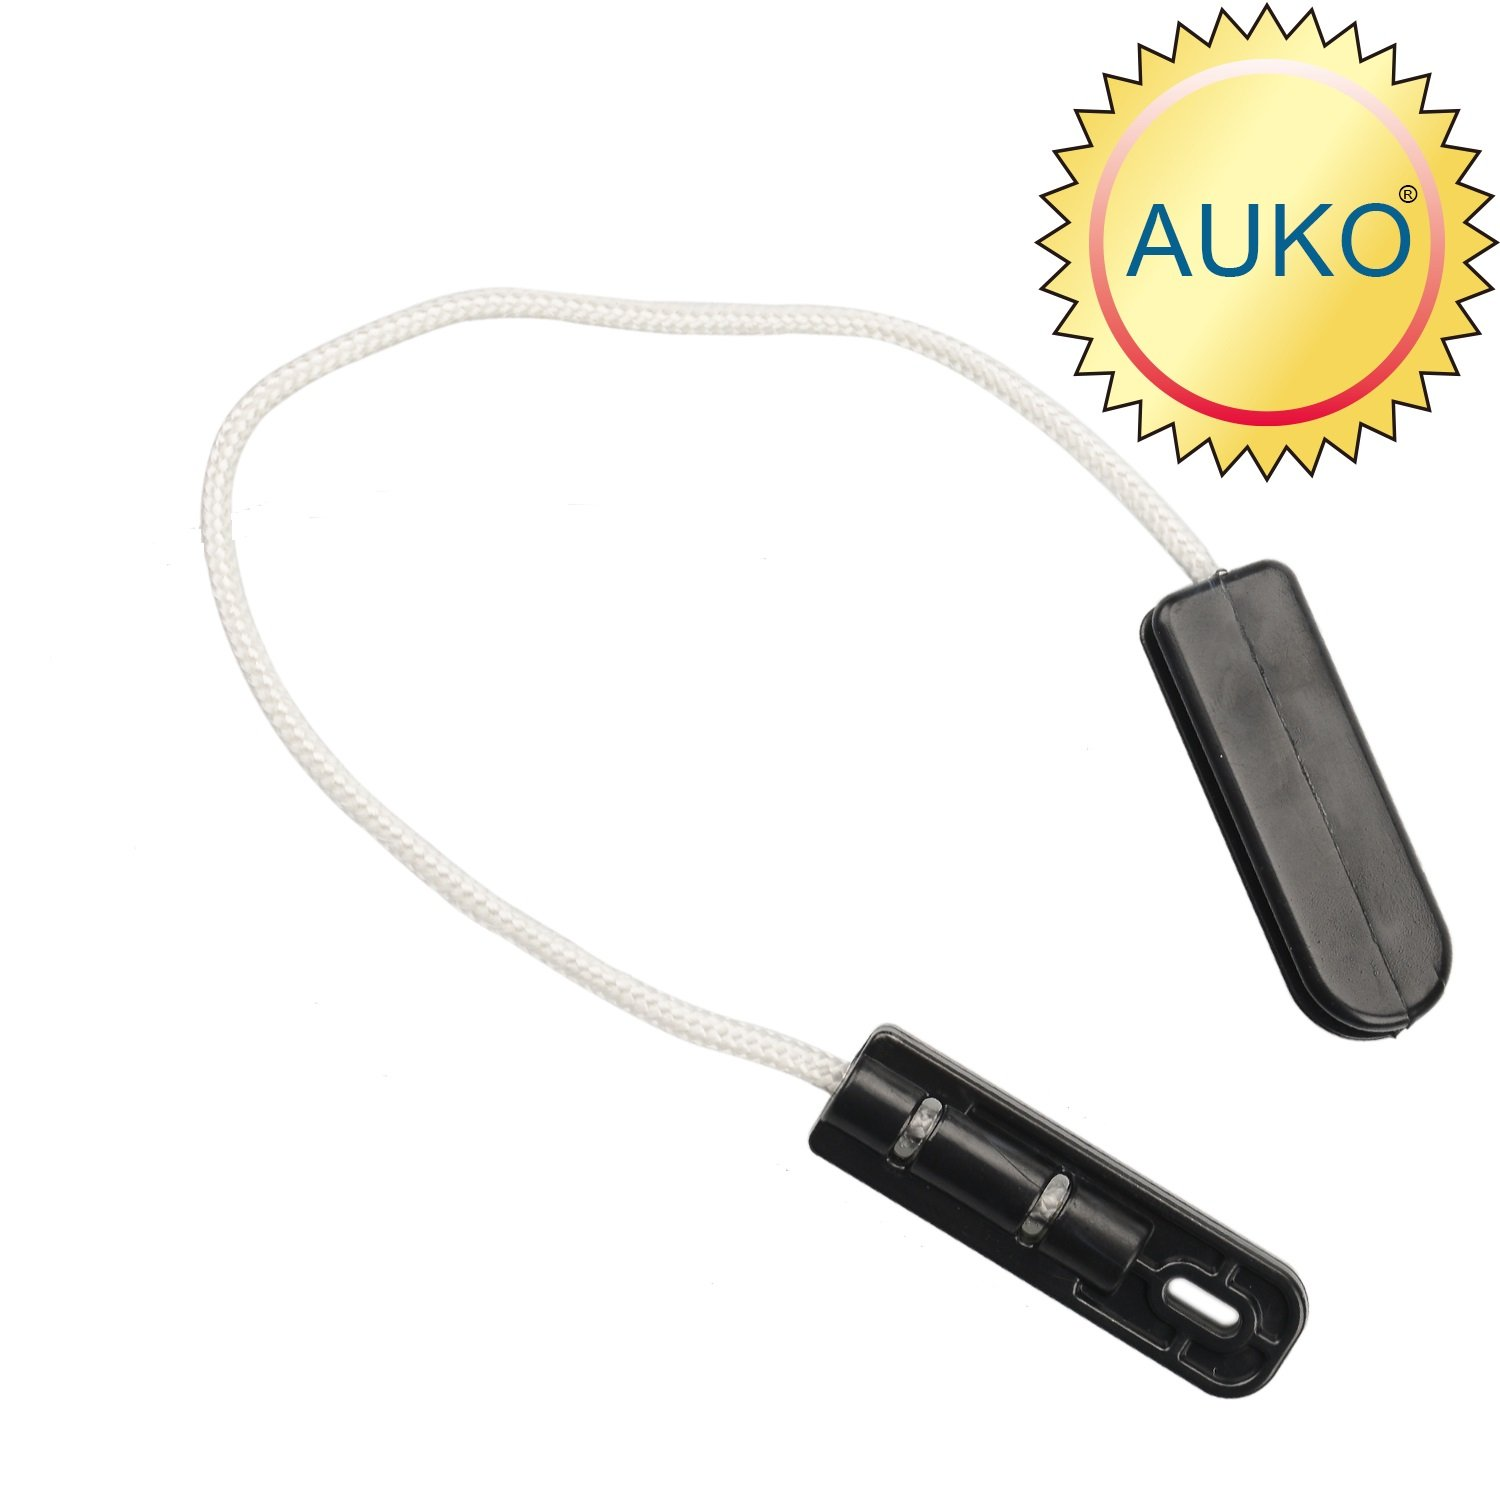 AUKO 4933DD3001B Dishwasher Hinge Cable Tension Cord Replacement for LG Electronic Part Replaces AP4511304 4933DD3001A PS3524406